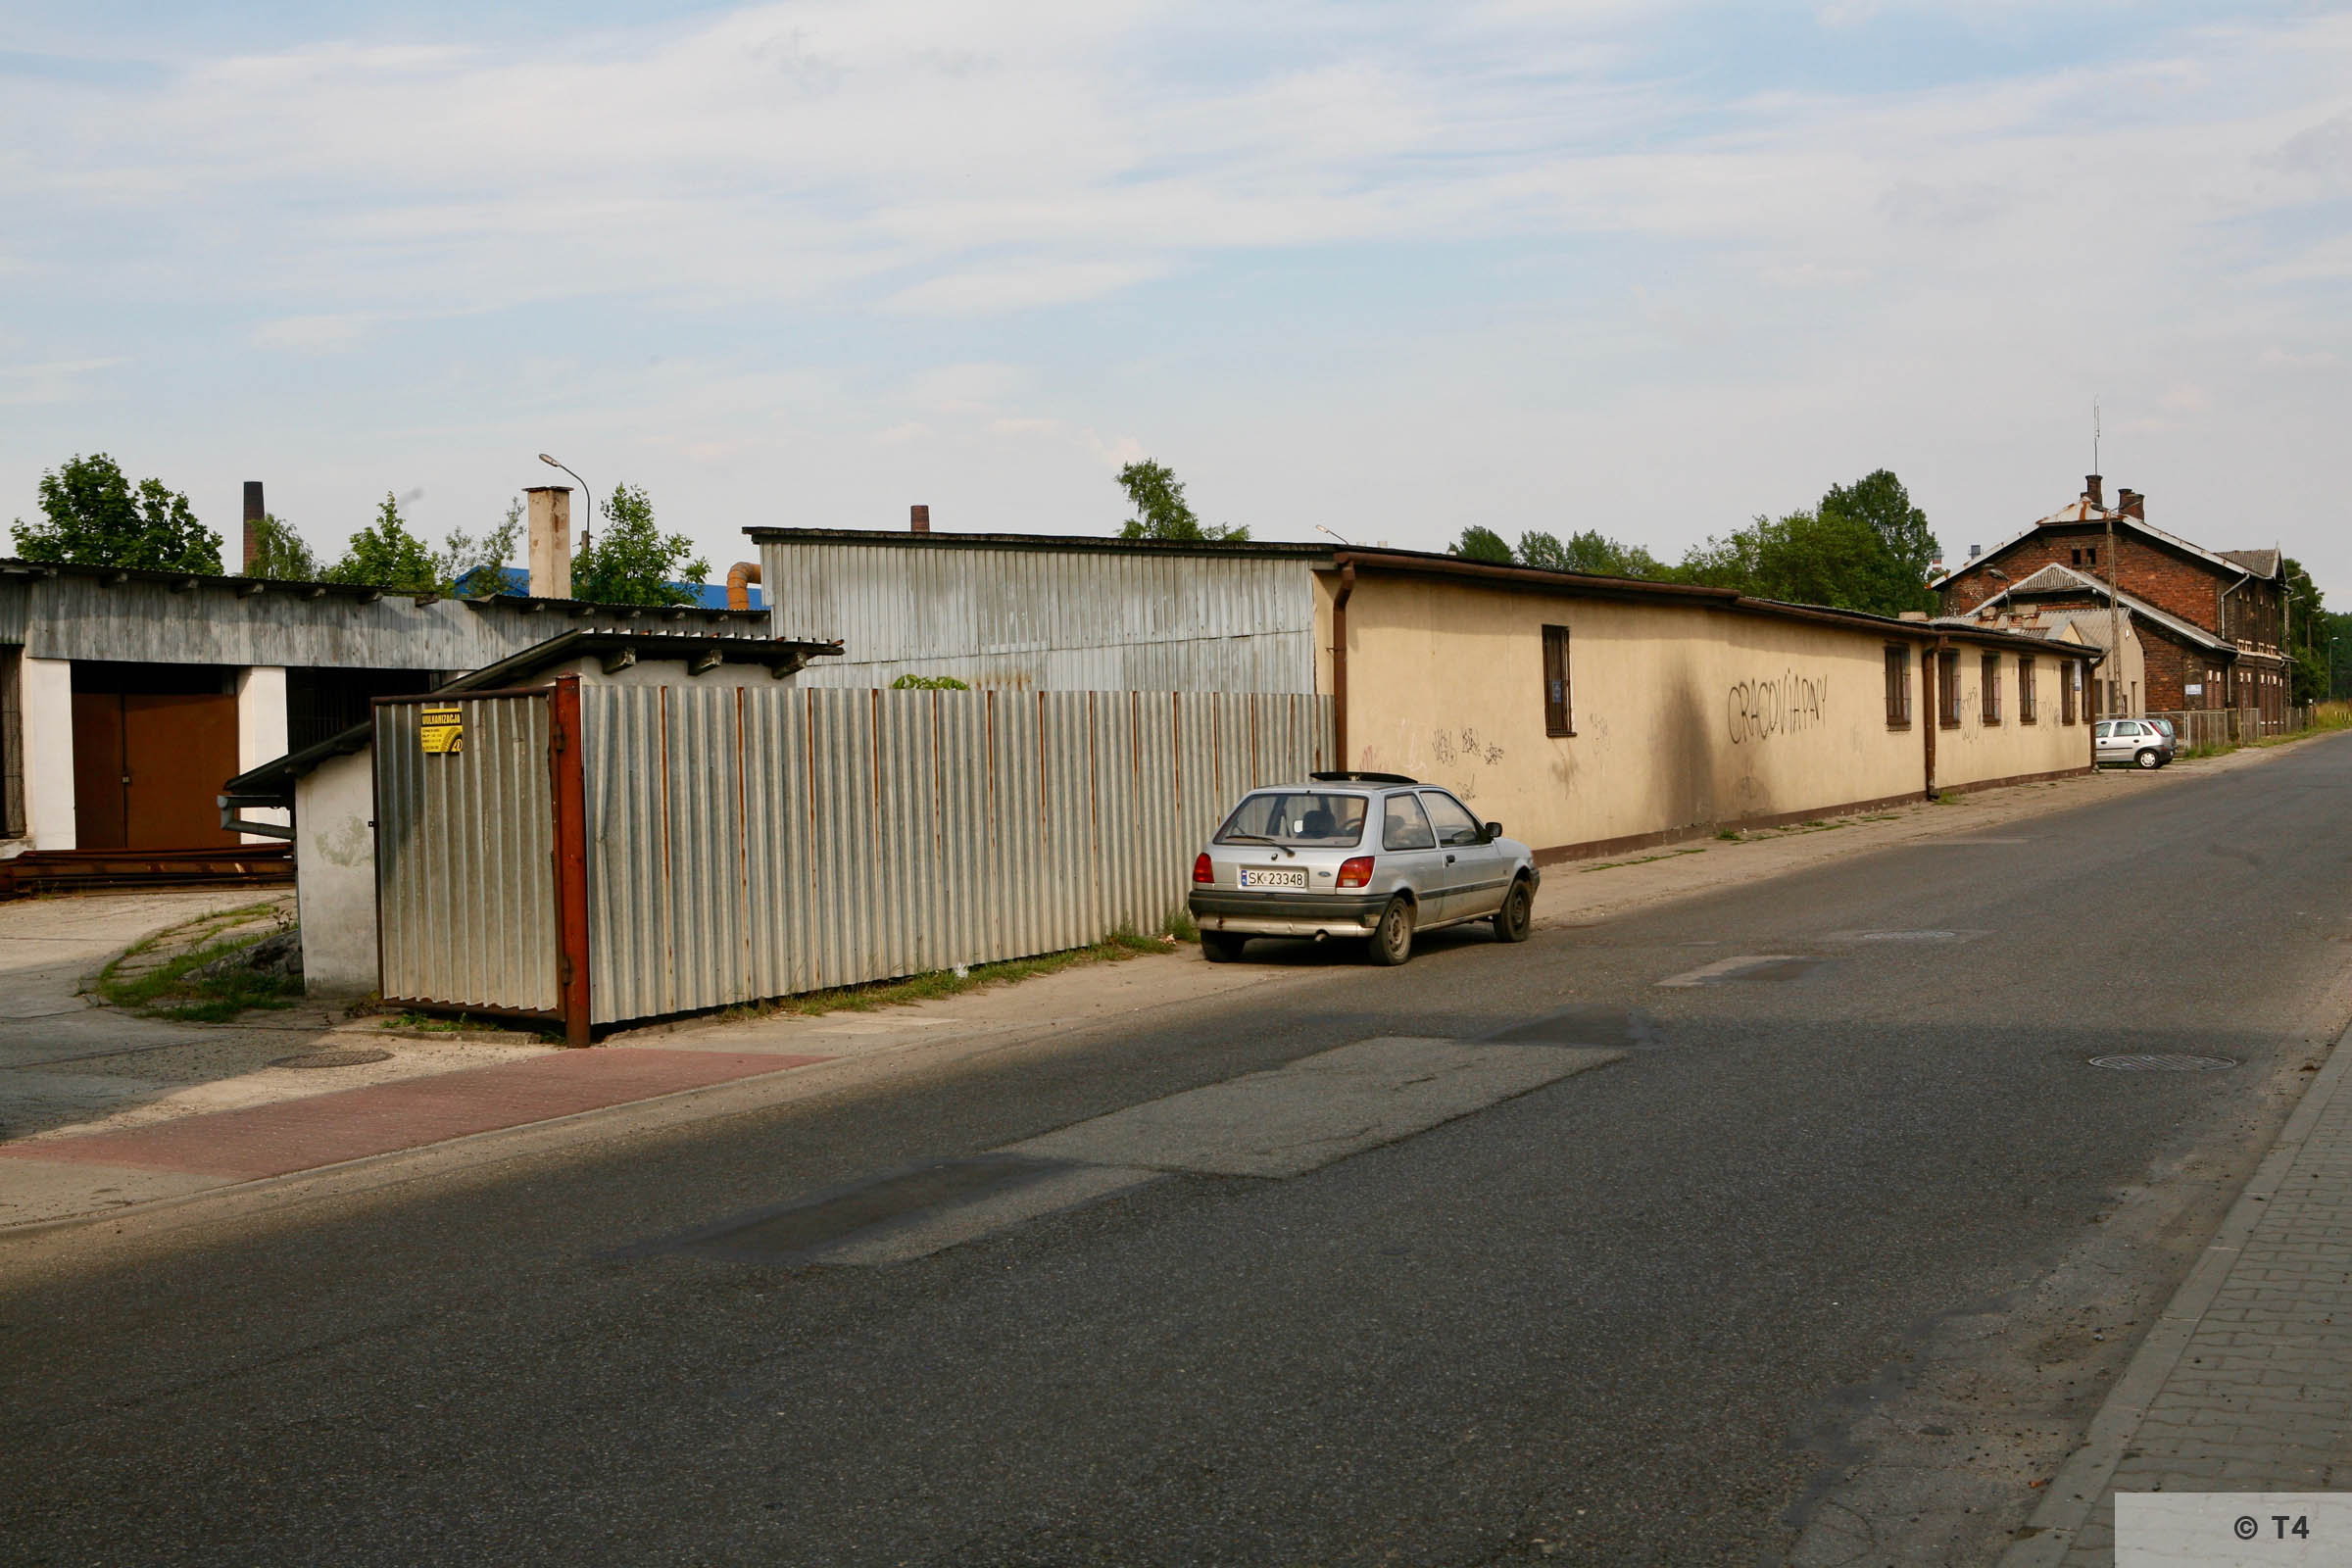 Barracks near Trzebinia railway station. 2007 T4 4737